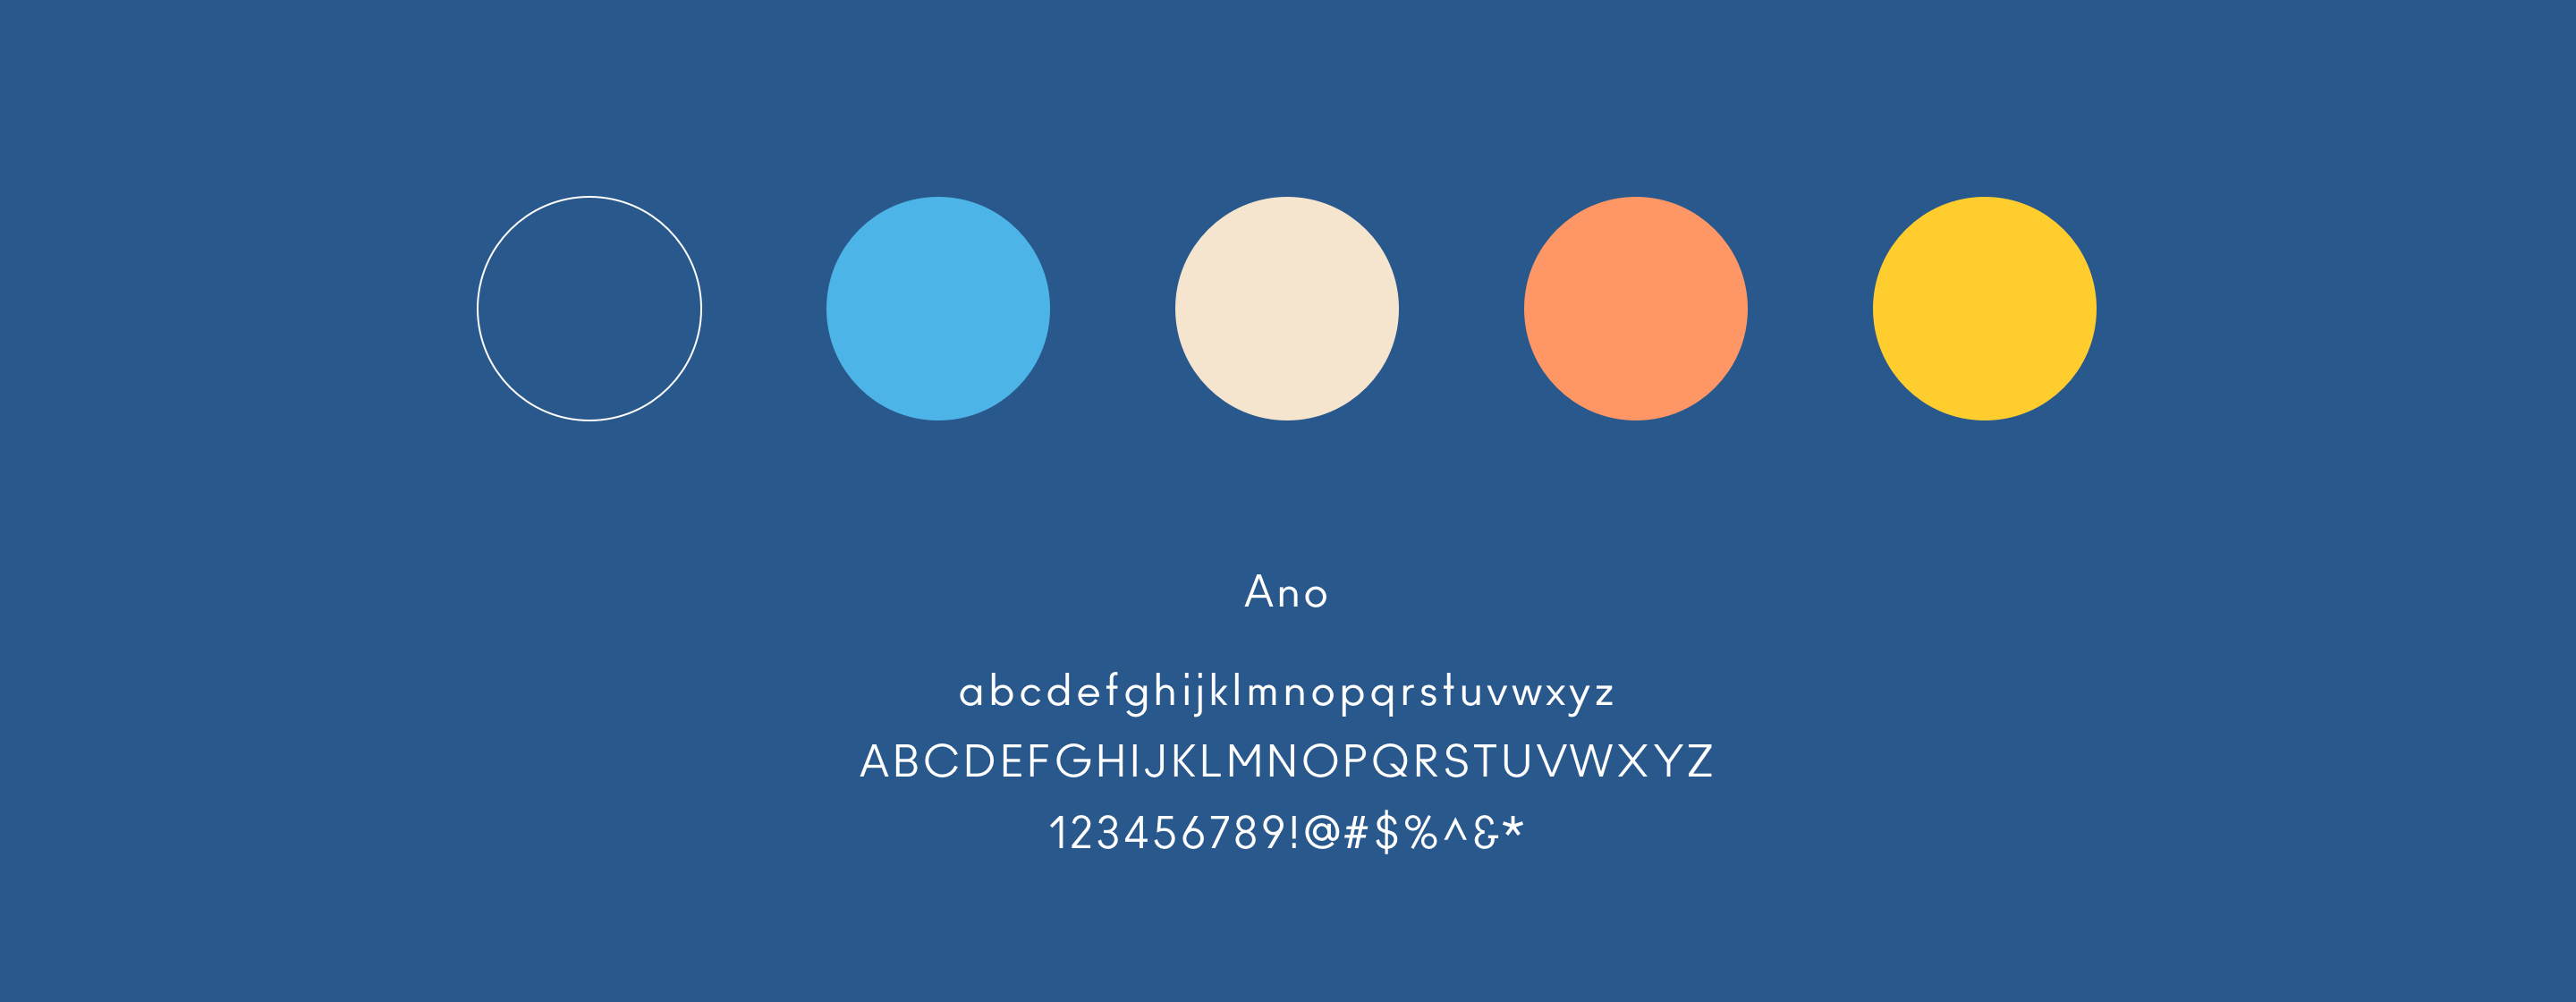 Bodewell color type